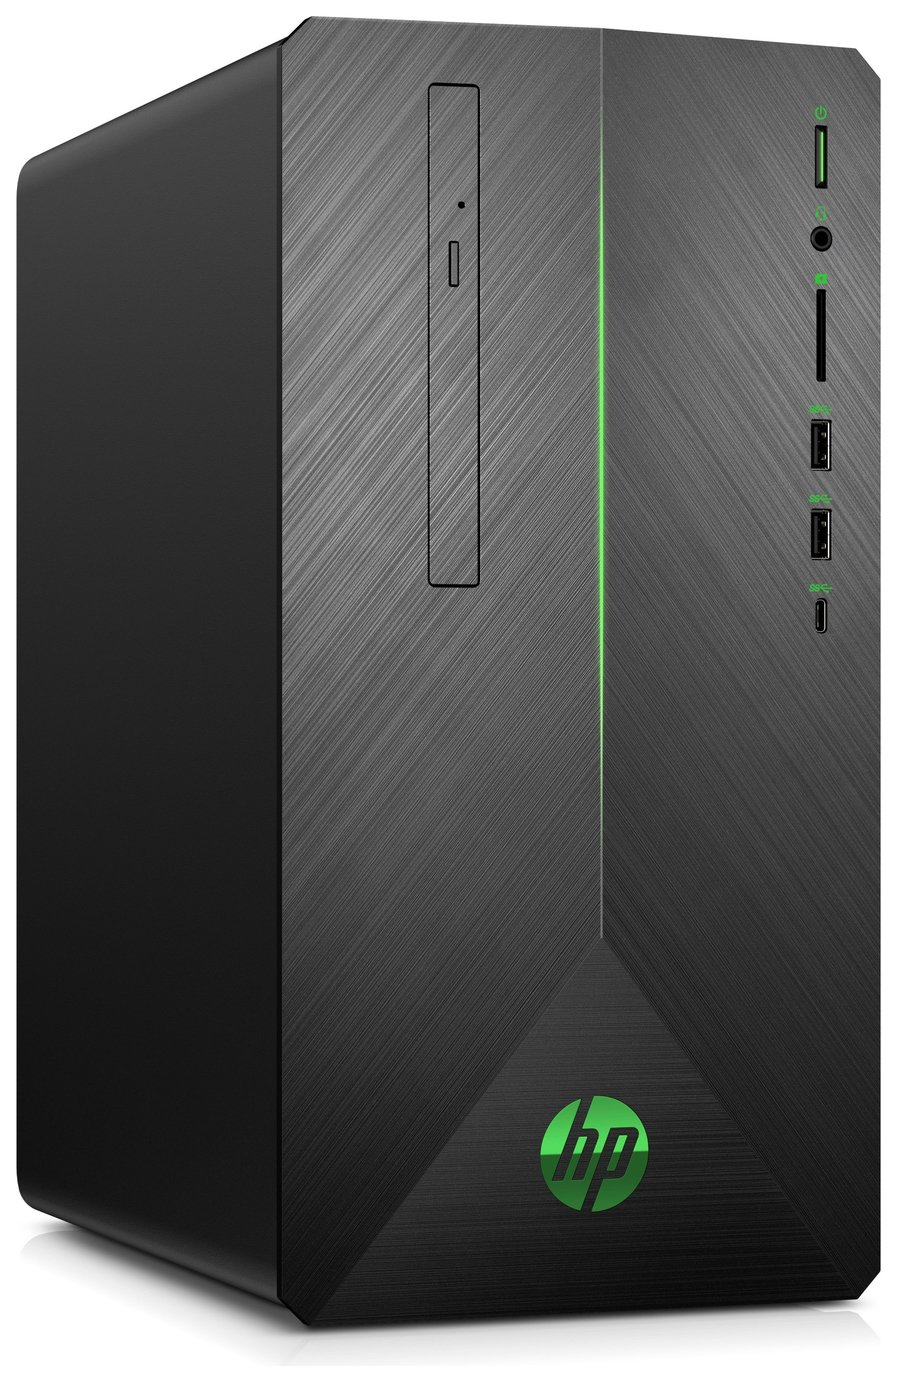 HP Pavilion i5 8GB + 16GB Optane 1TB GTX1050 Gaming PC